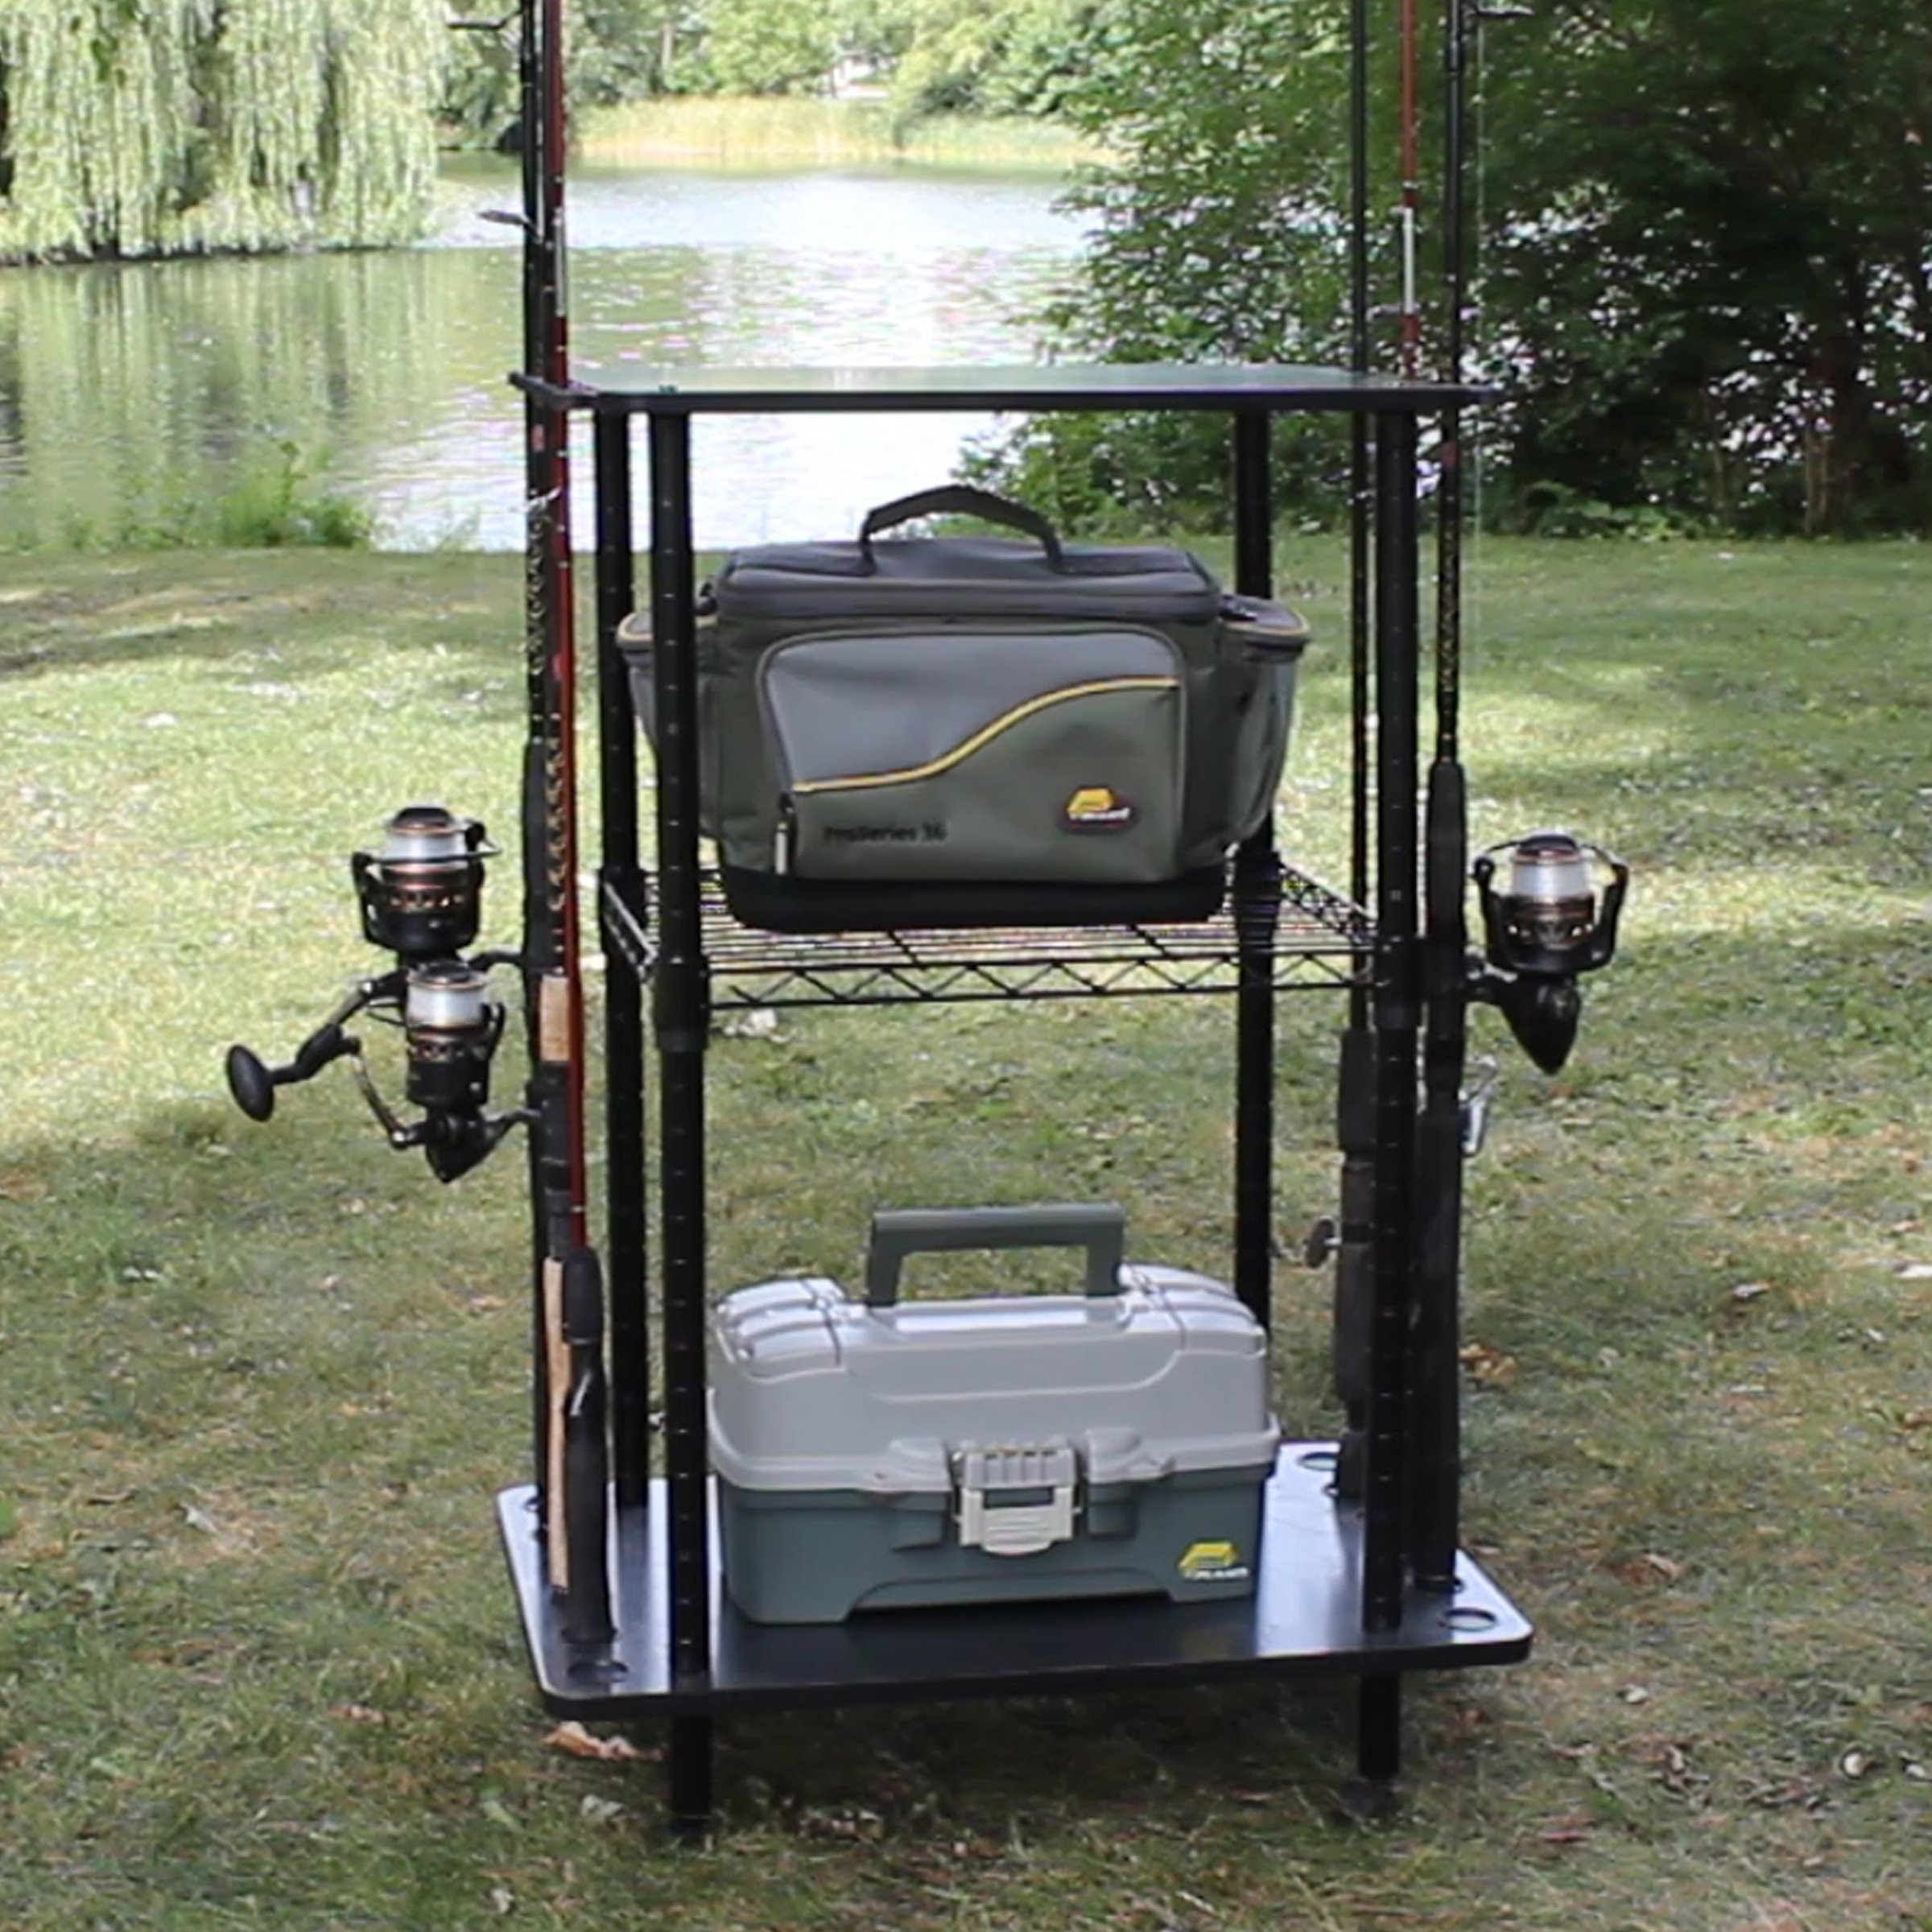 Rush Creek Creations 12 Fishing Rod Storage Tackle Cart - Durable Finish - 5 Minute Assembly by Rush Creek Creations (Image #7)